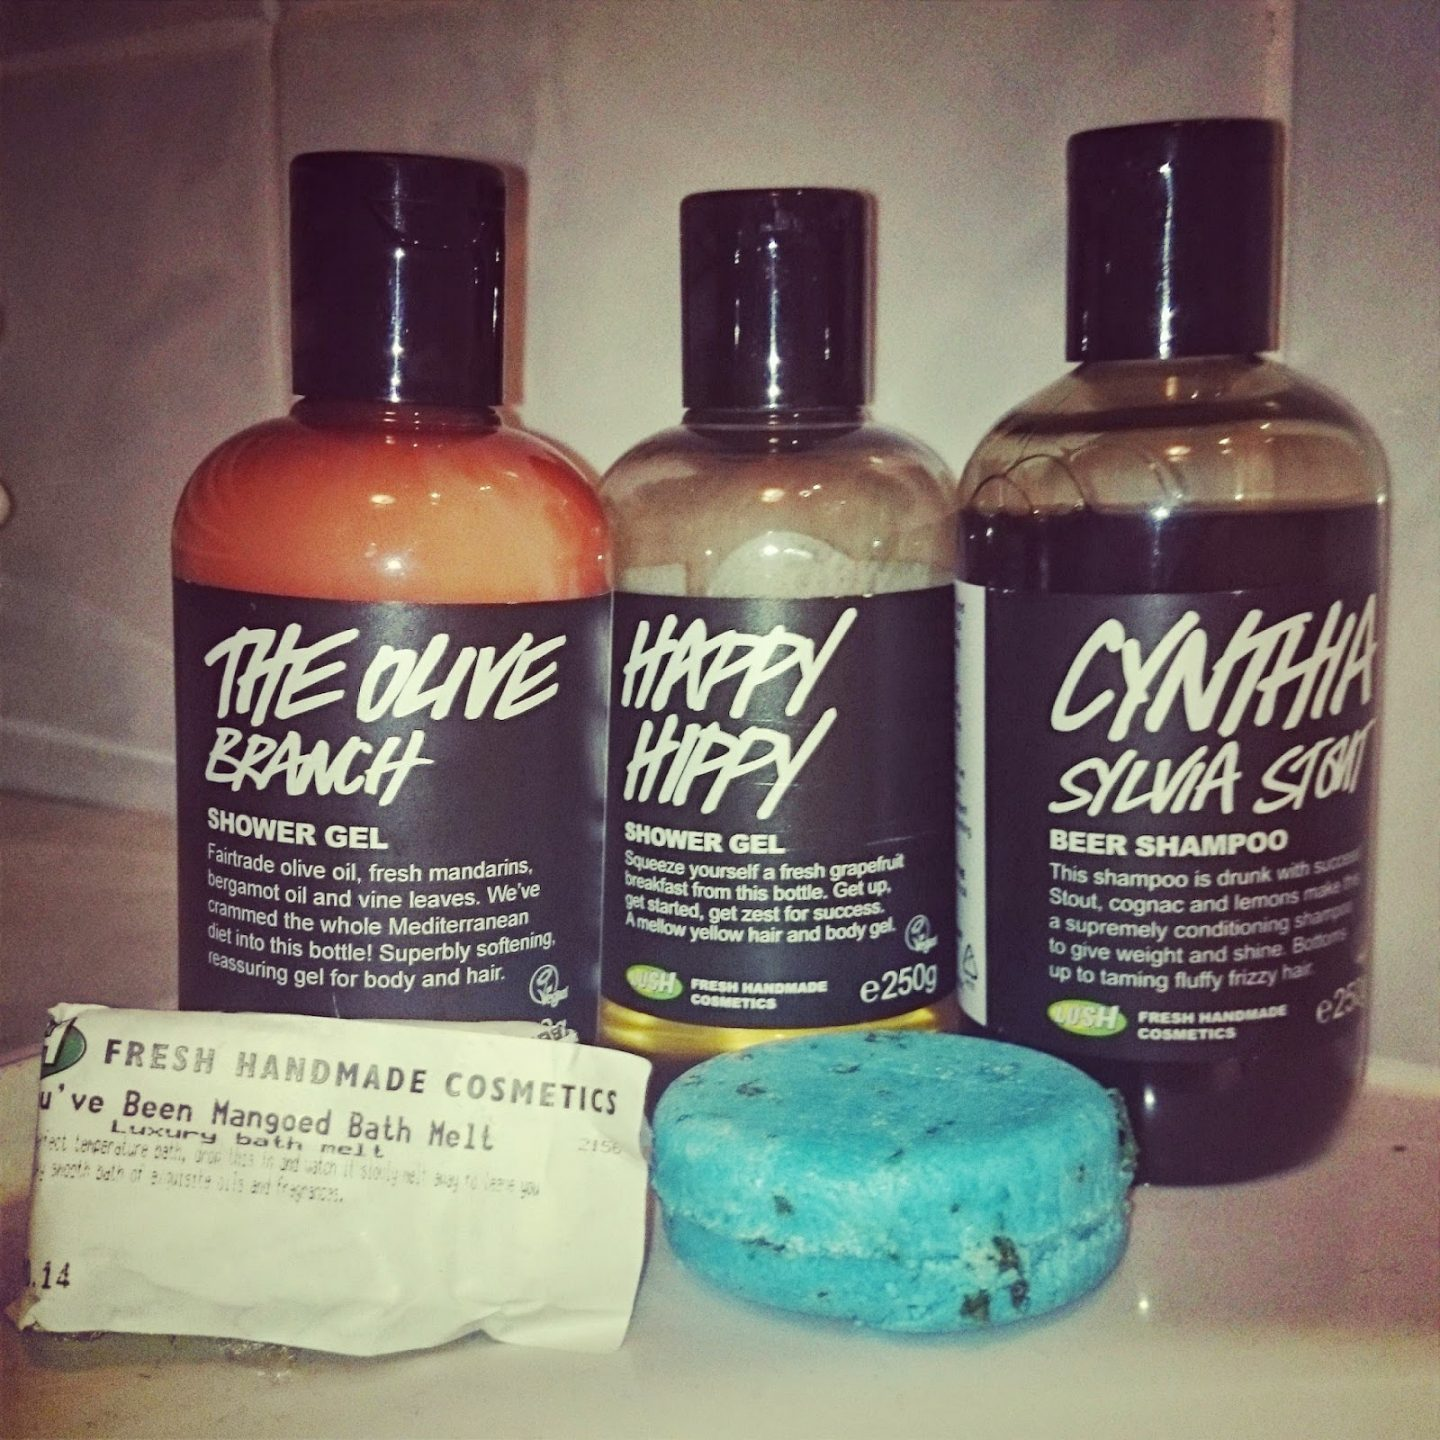 Trials of Green Beauty: The Olive Branch by Lush